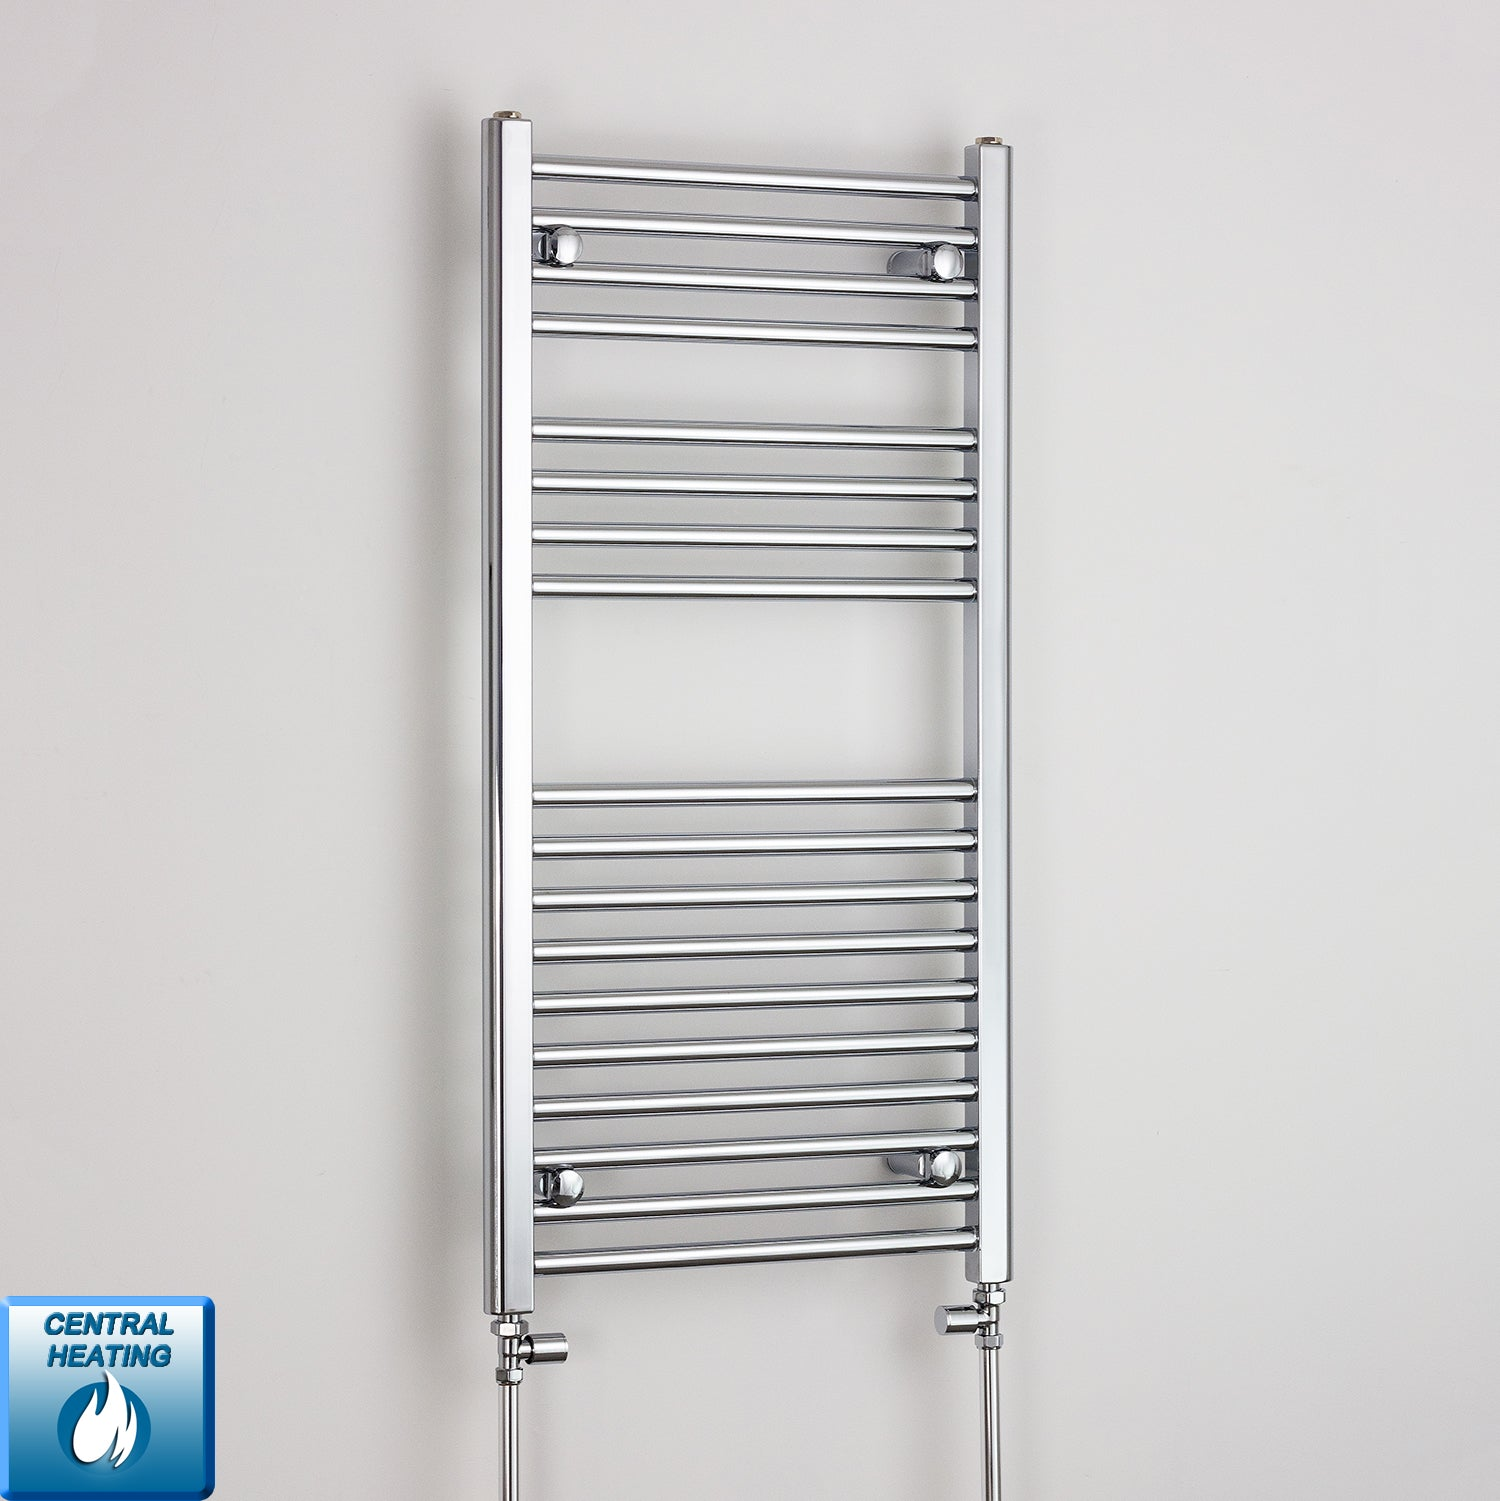 600mm Wide 1000mm High Curved Chrome Heated Towel Rail Radiator HTR,With Straight Valve